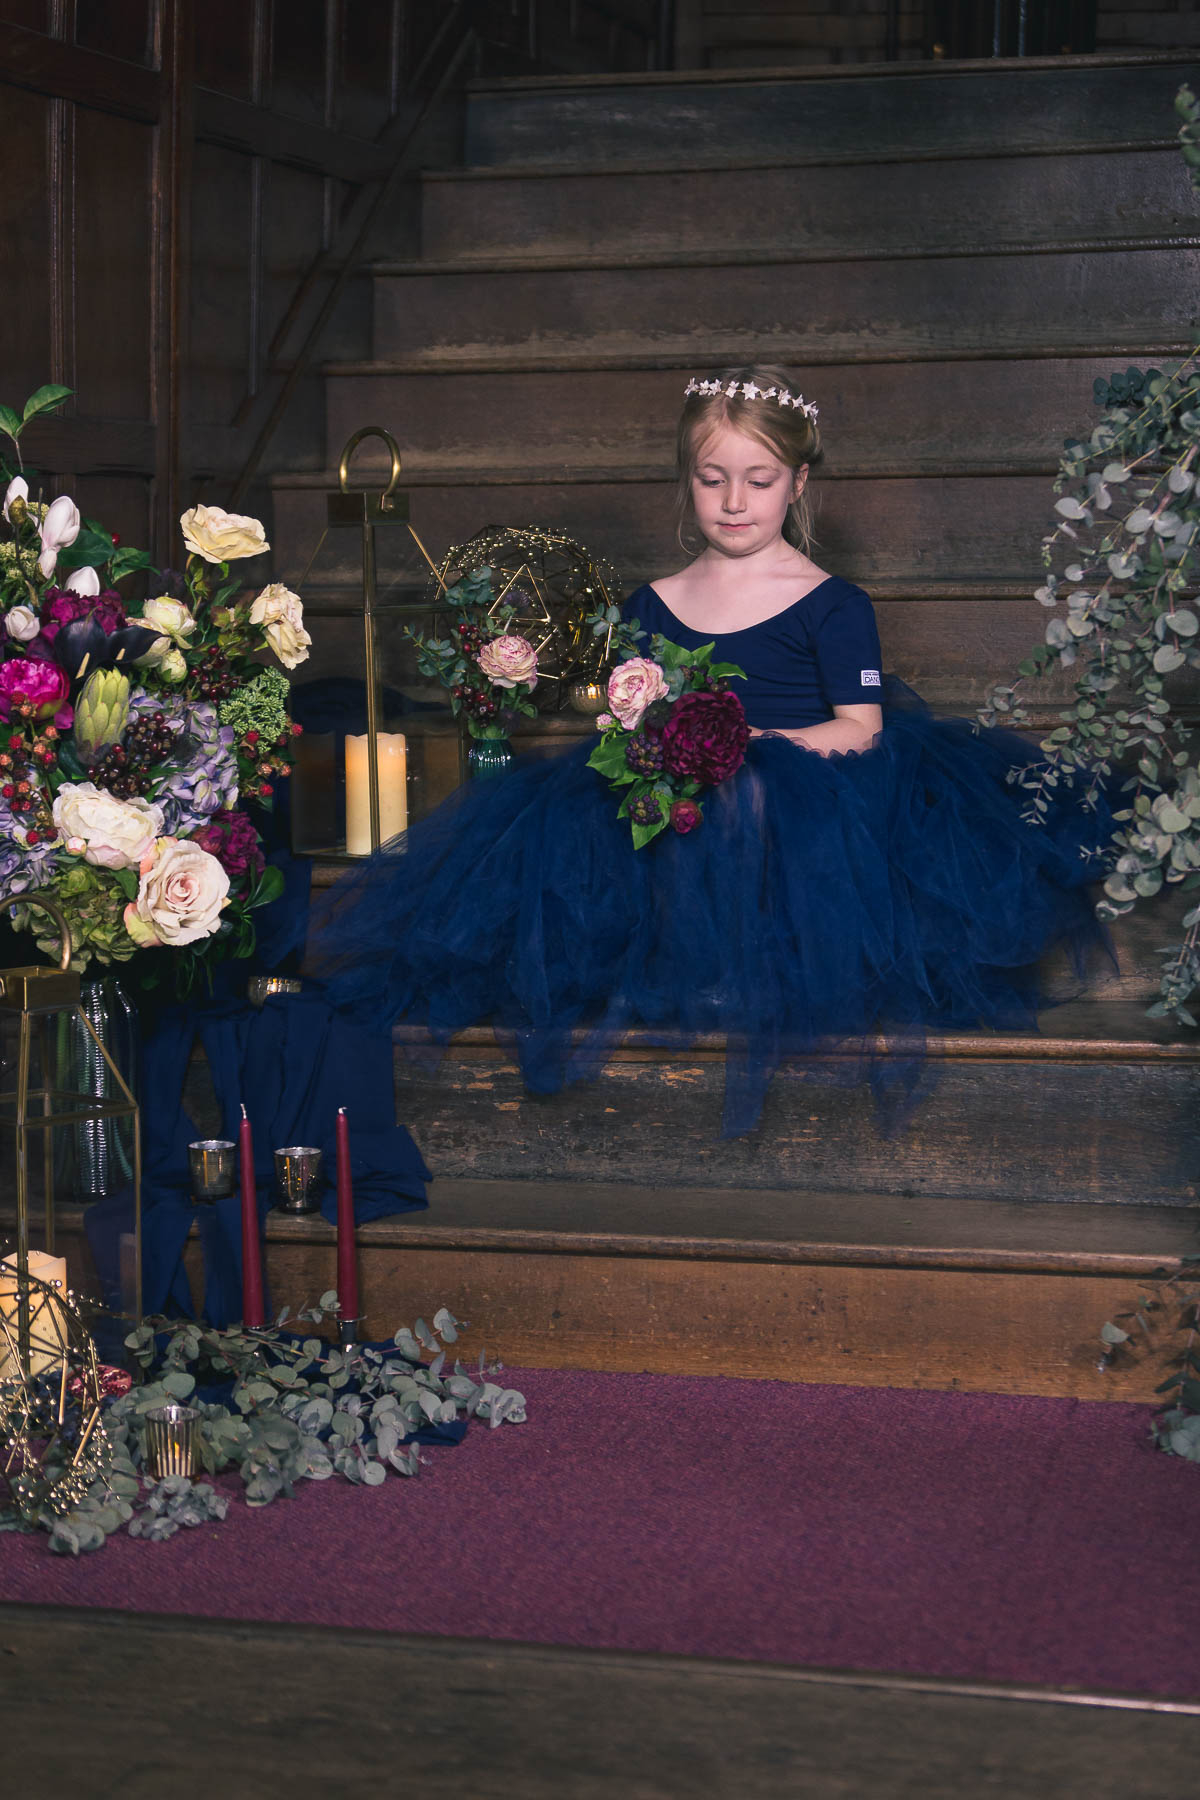 red berry and navy inspired wedding flower girl outfit ideas